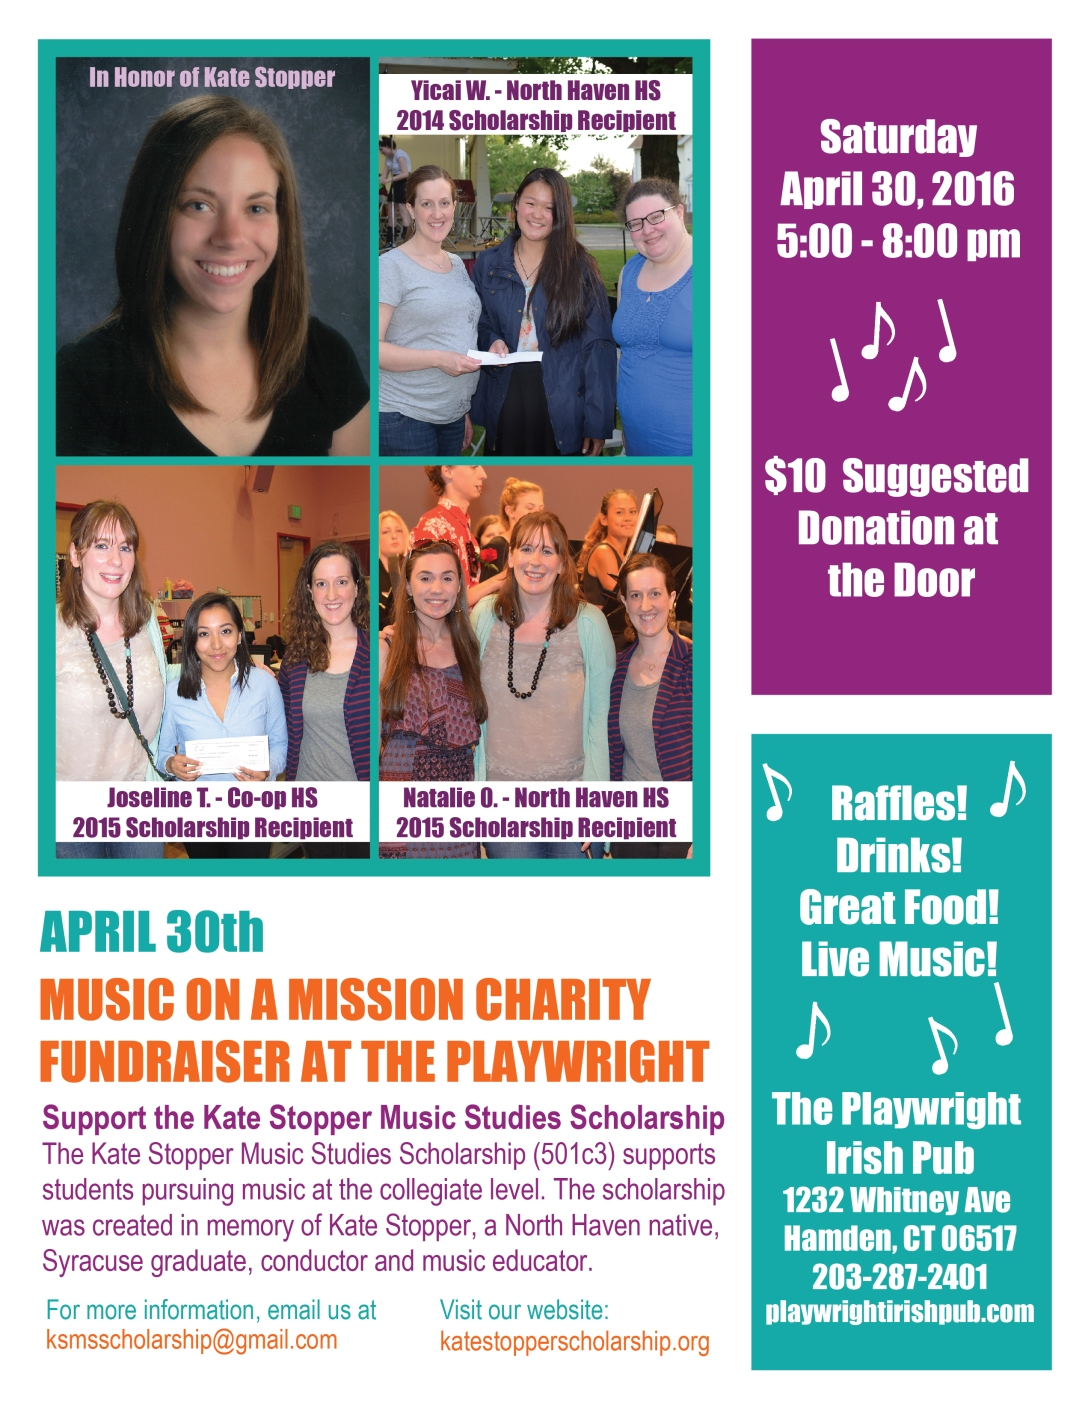 2016 Apr 30 Fundraiser Flyer 4 Photo Version 8.5 x 11 - HIGH RES